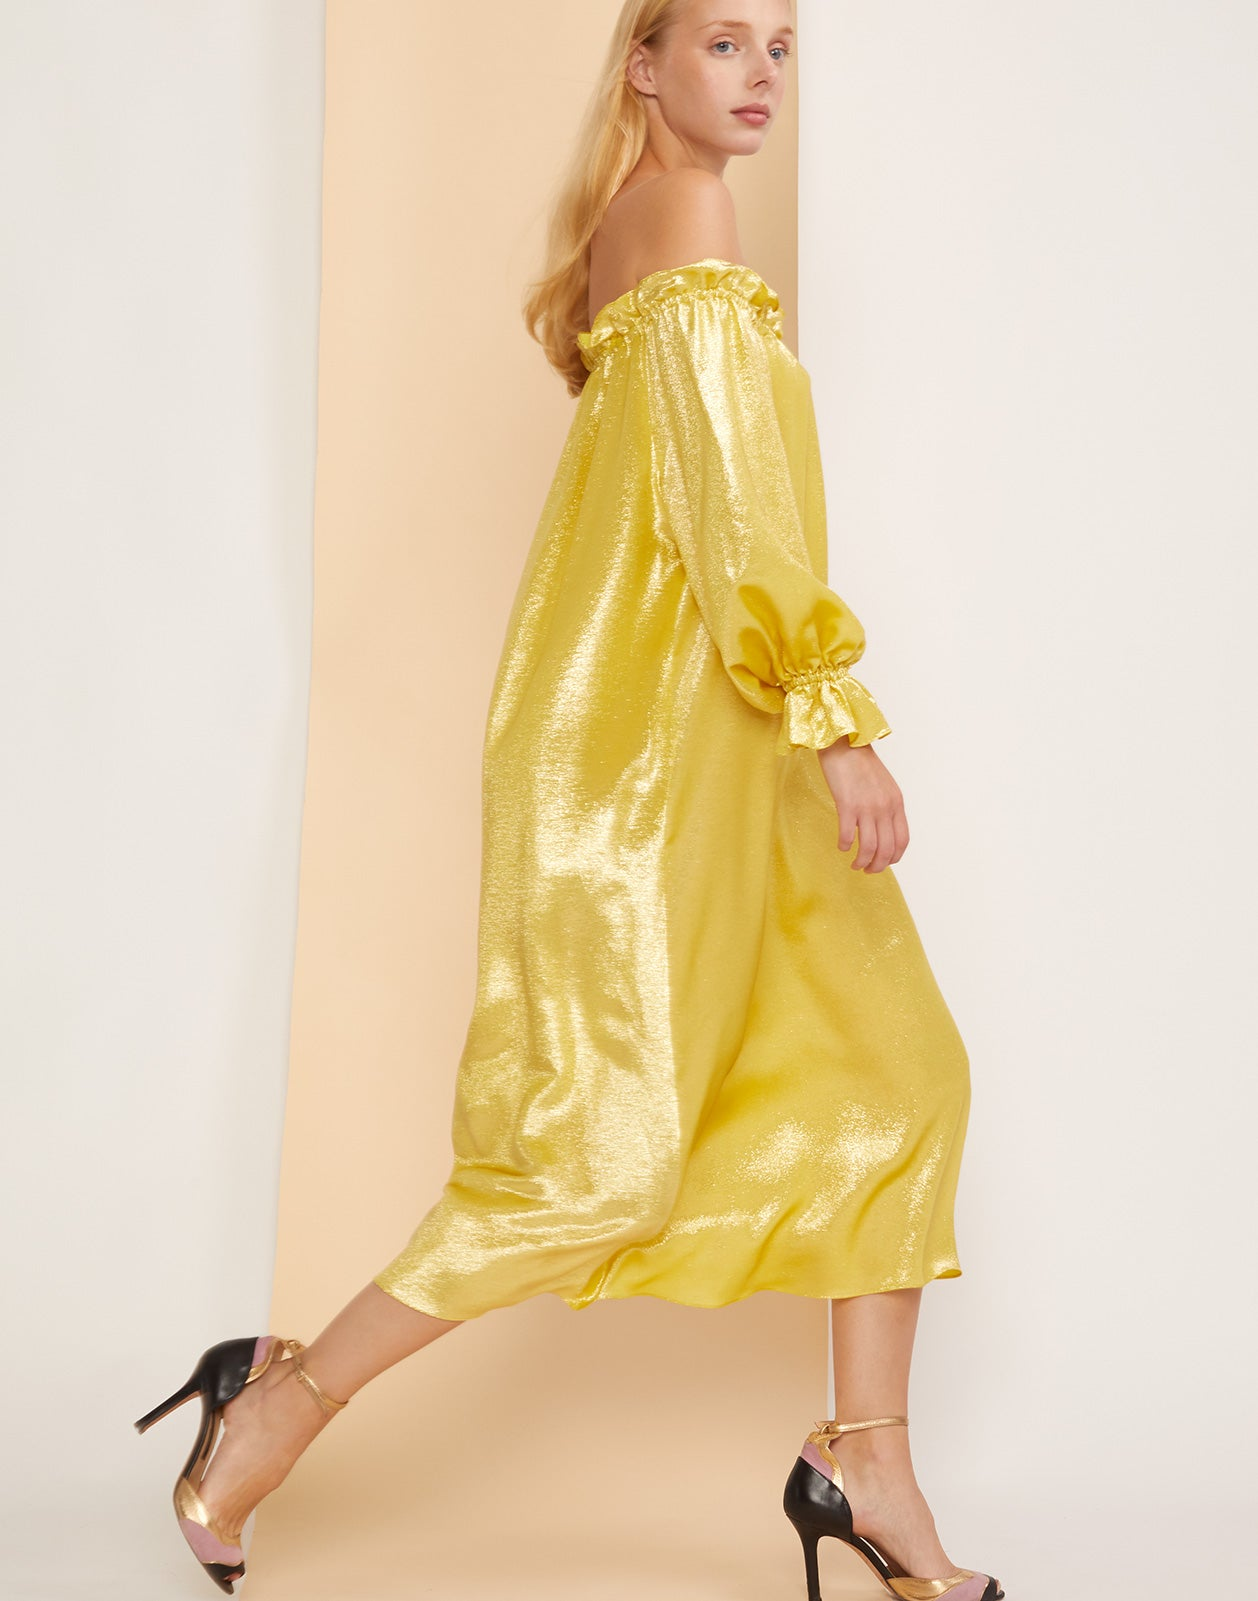 Side view of the Shanley yellow shimmer dress.